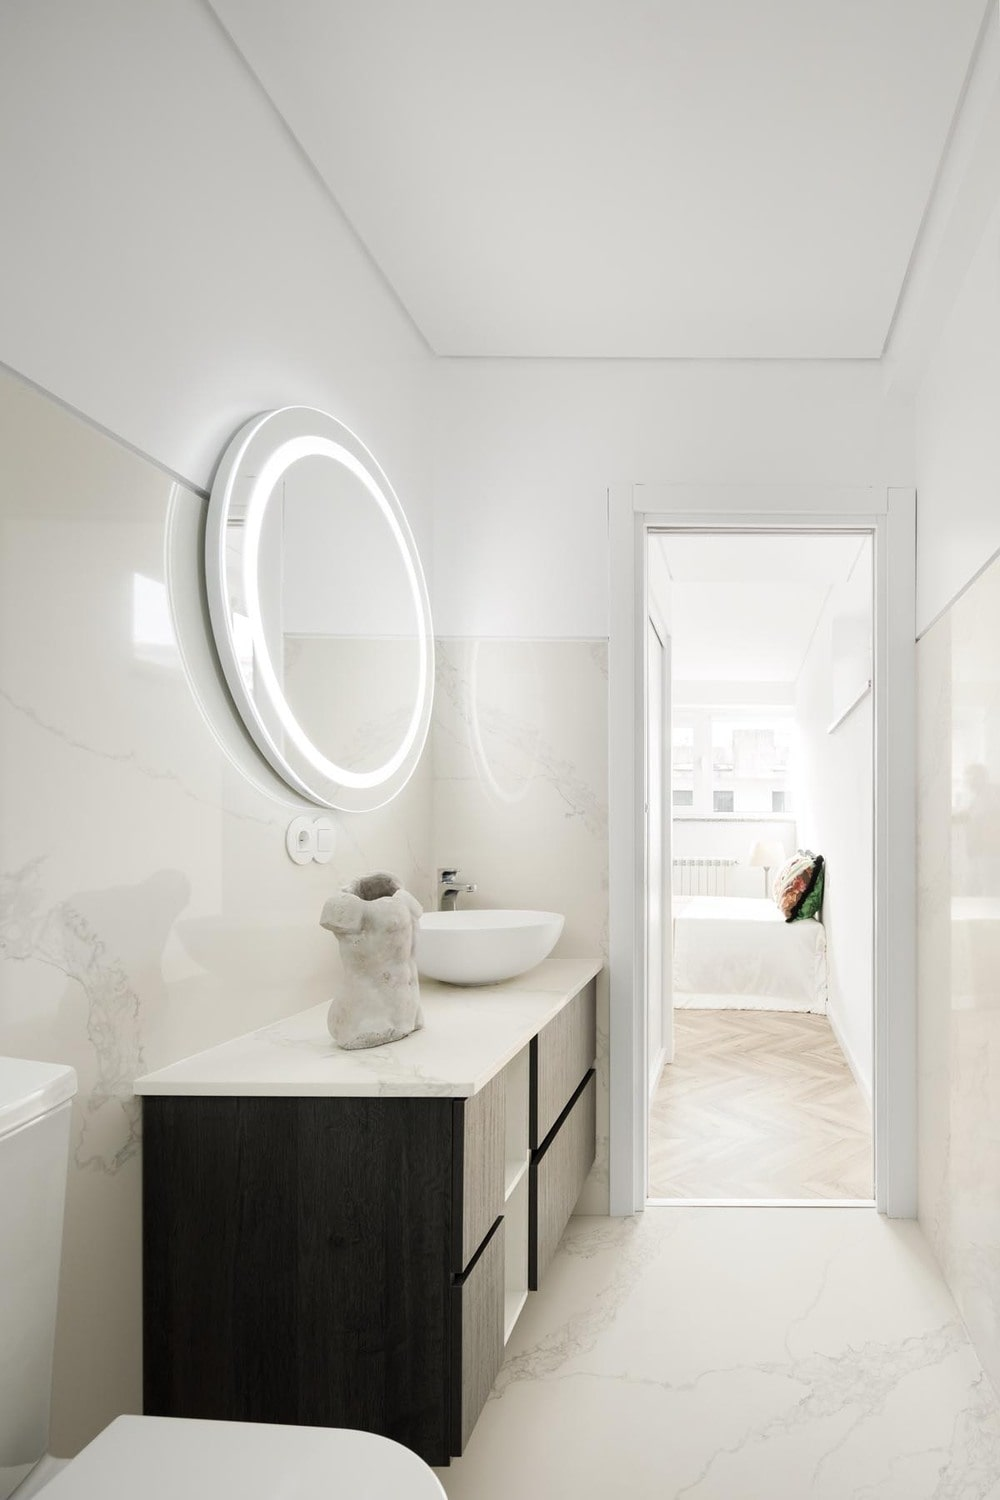 This is the bright white bathroom that is contrasted by the black vanity topped with a circular mirror with lighting.